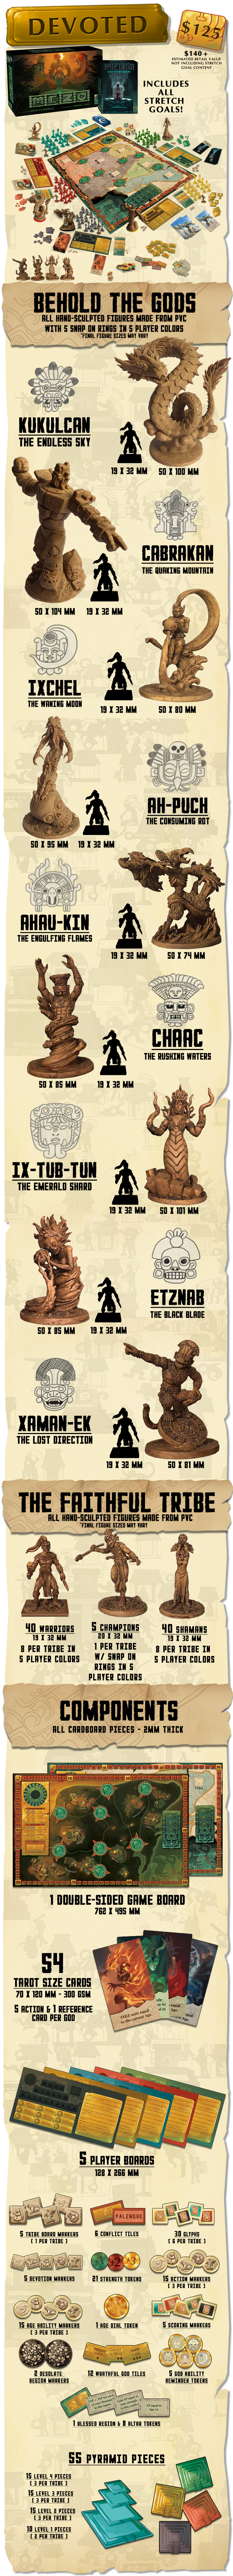 The DEVOTED PLEDGE is the ultimate experience for Mezo. It expands the game to five players with an all new tribe (3 more sculpts), as well as 5 more massive Mayan gods that further explore the game with all new strategies. It also includes more Altars and Wrathful tiles for even more game variability! With all gods unlocked, this pledge level offers 1,573 possible game play combinations of gods from 2-5 players! Estimated retail value of $140--not including Souls for Xibalba content.